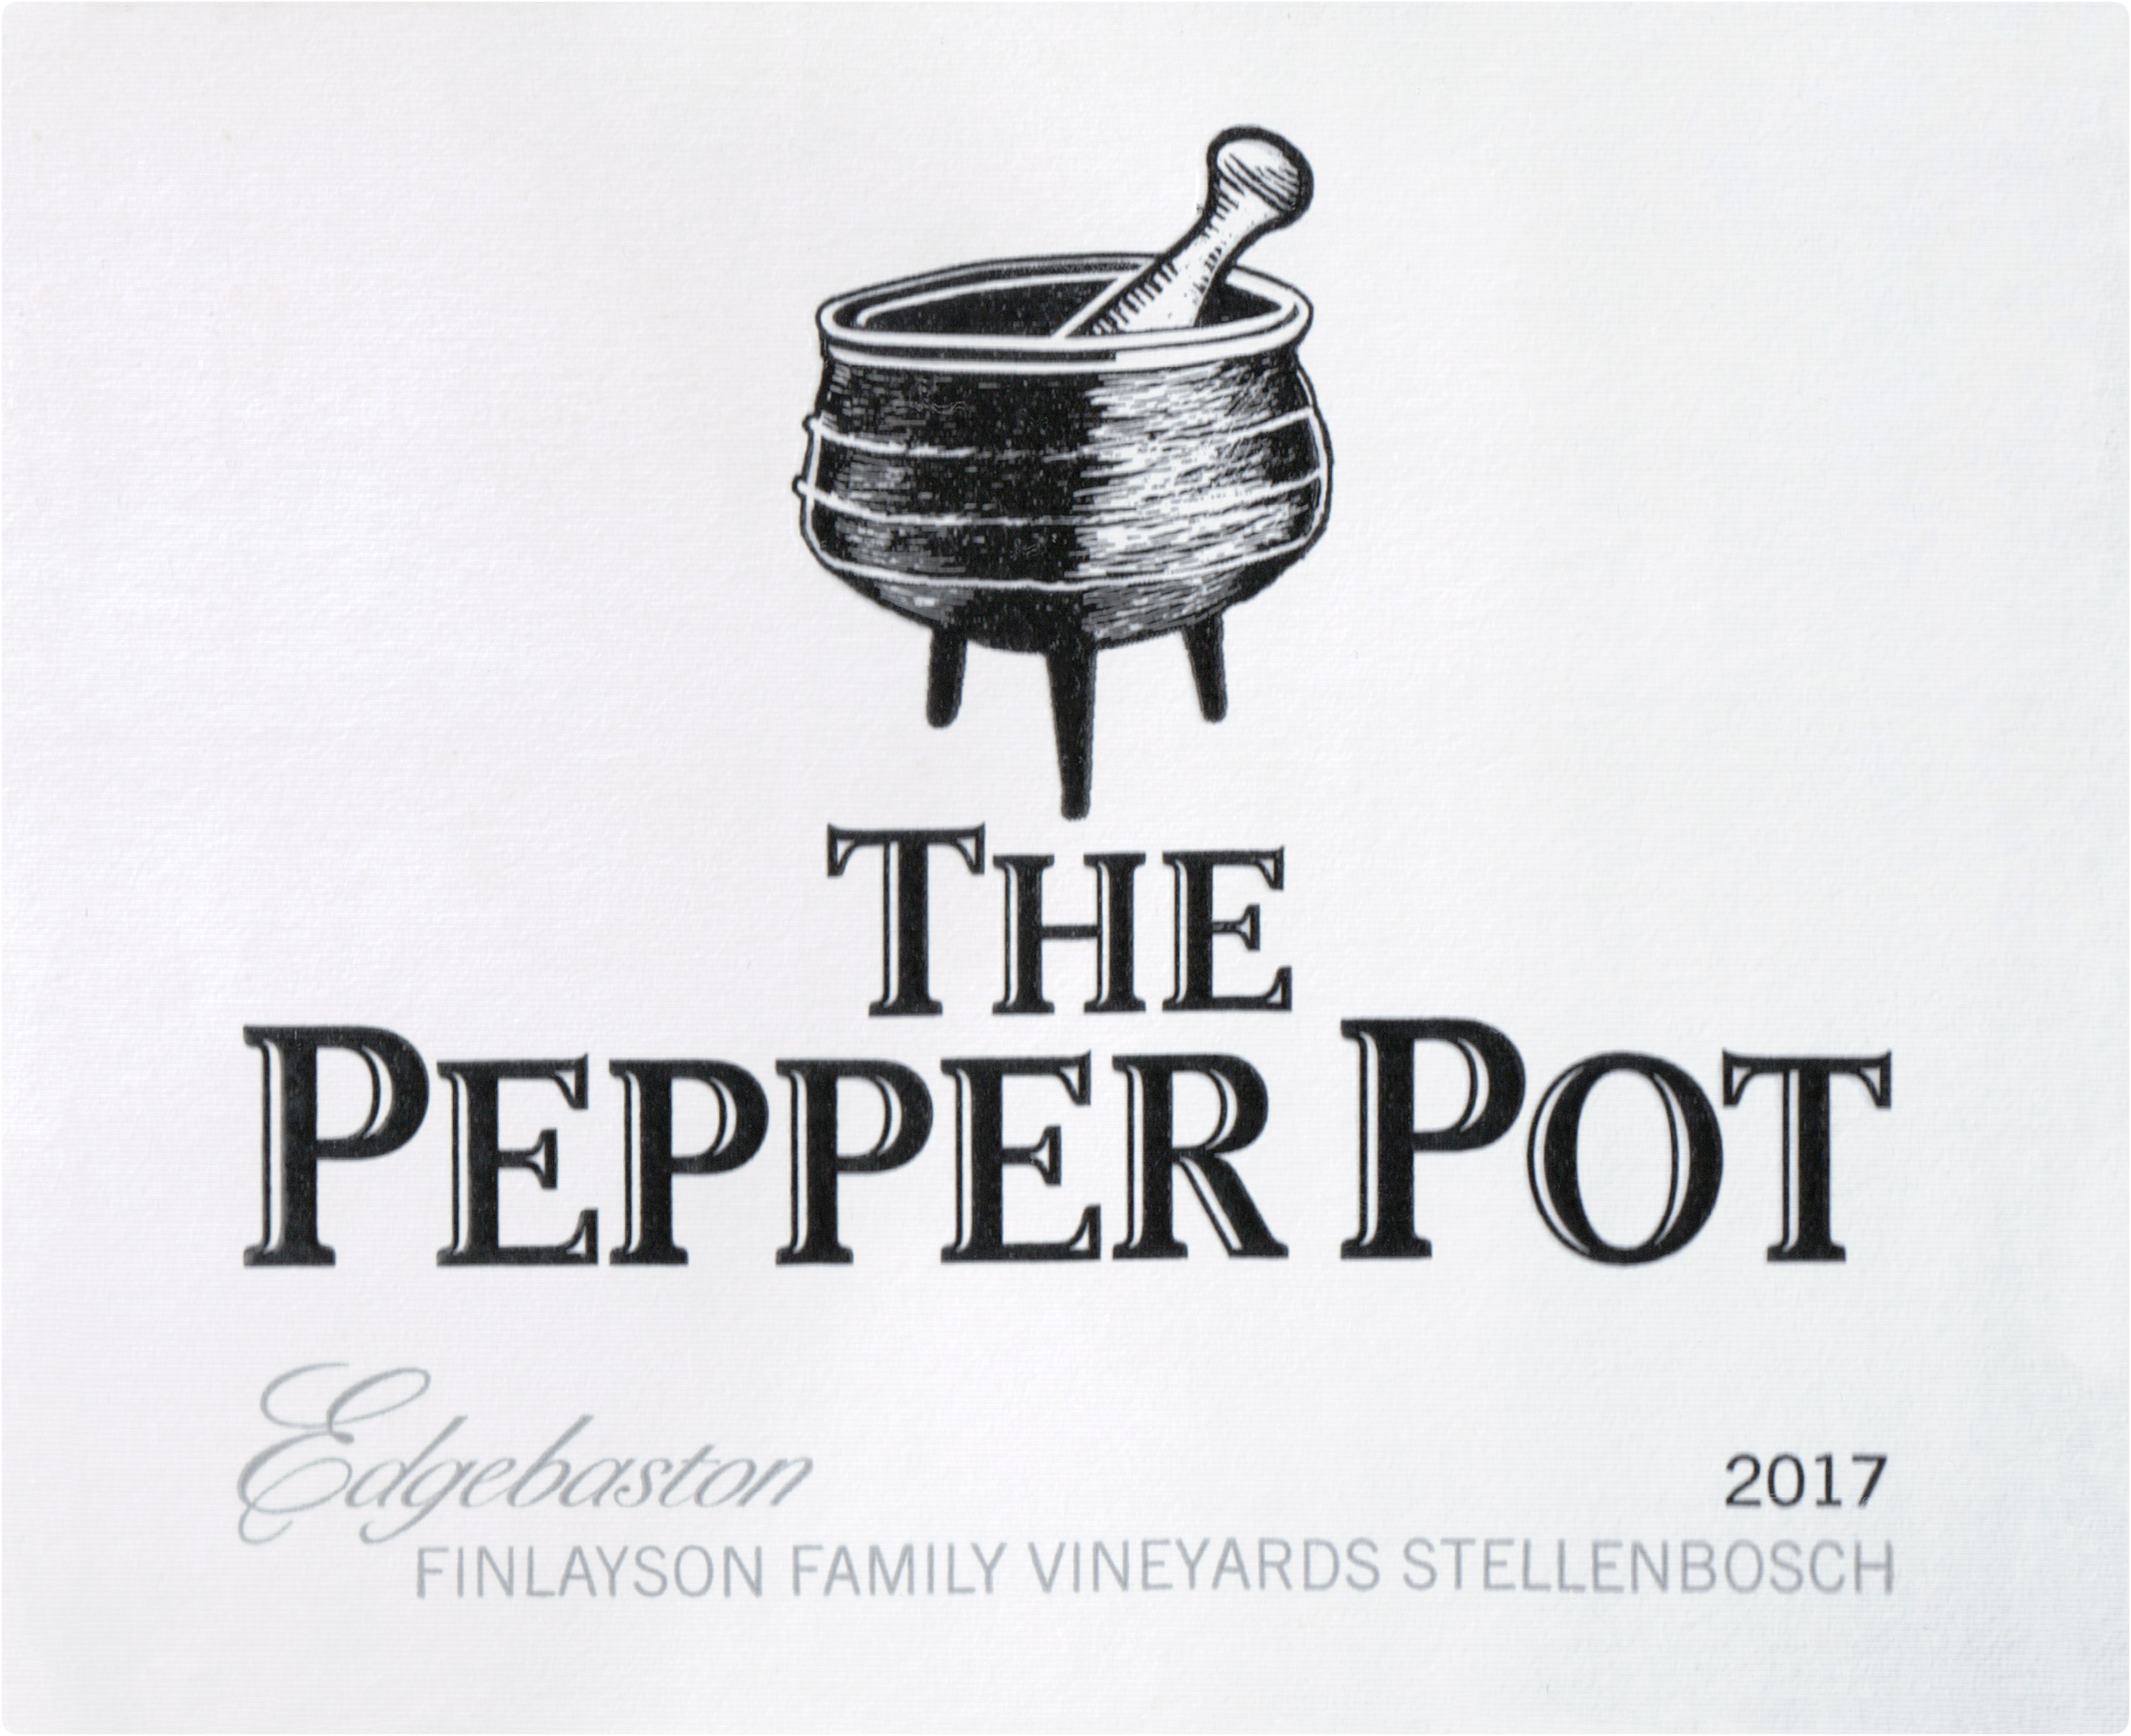 Edgebaston Finlayson The Pepper Pot 2017